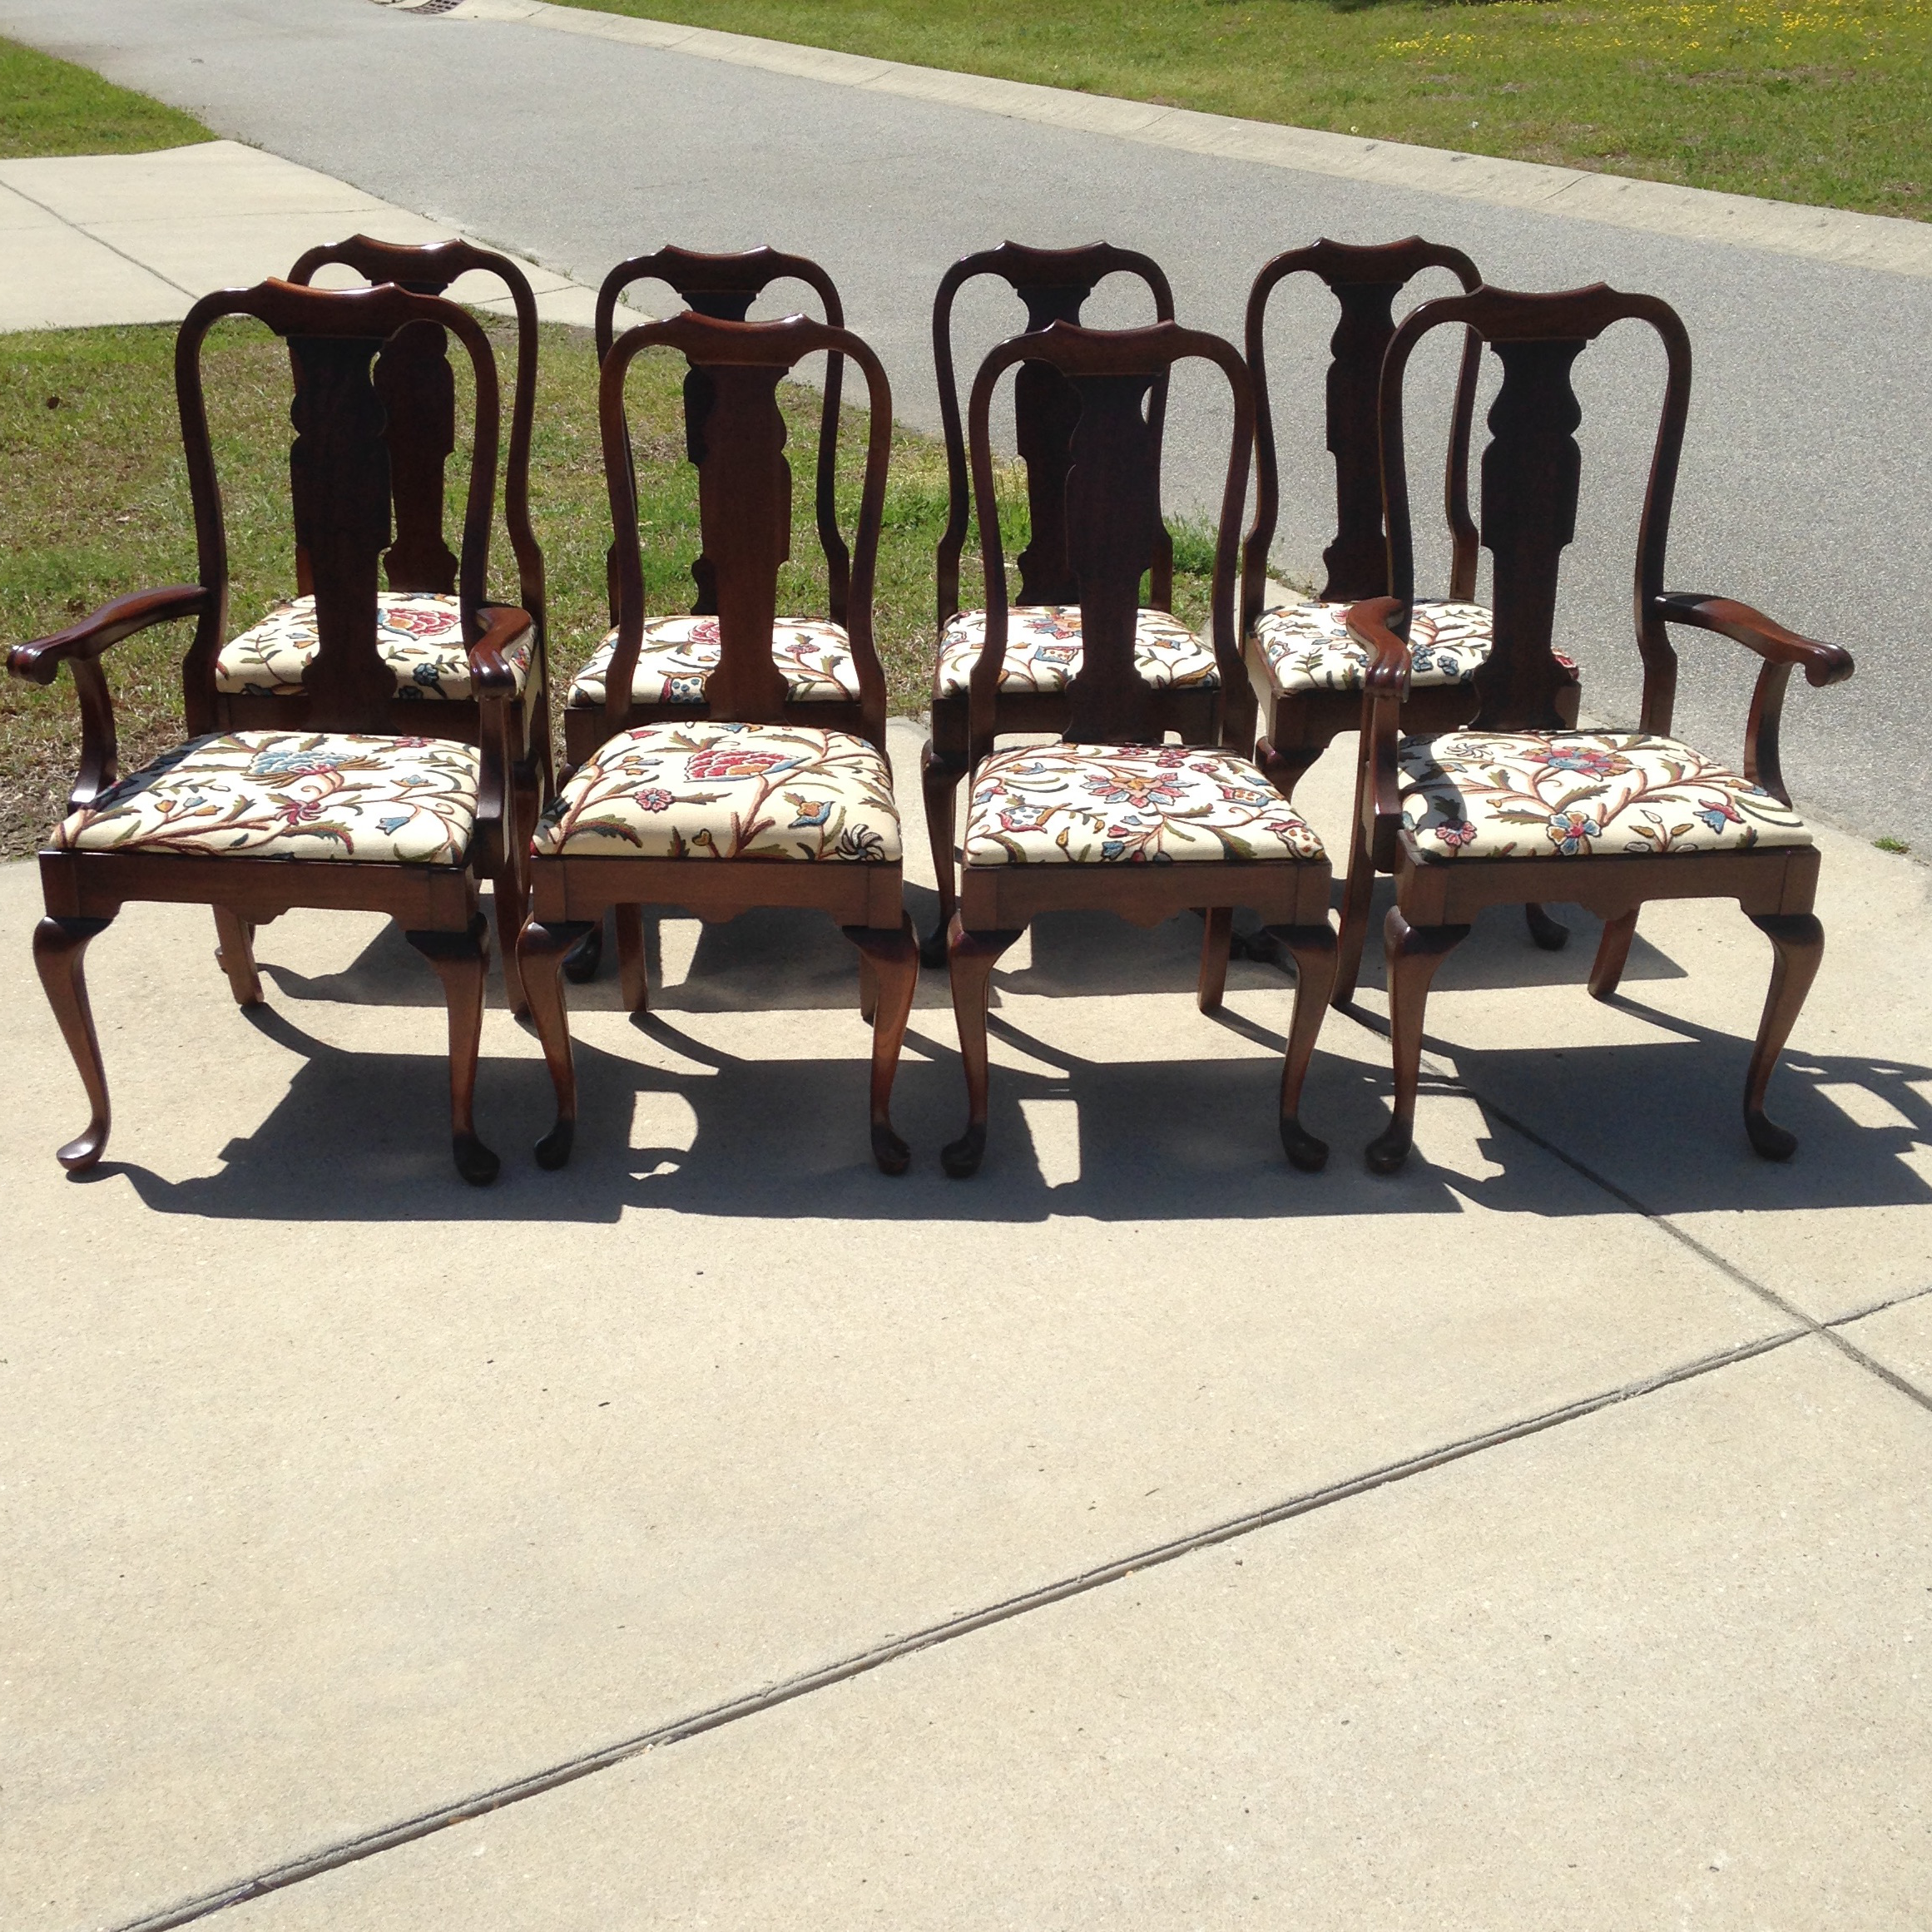 Awesome Classic Pennsylvania House Queen Anne Dining Chairs. Made Of Beautiful  Solid Cherry Wood With Custom